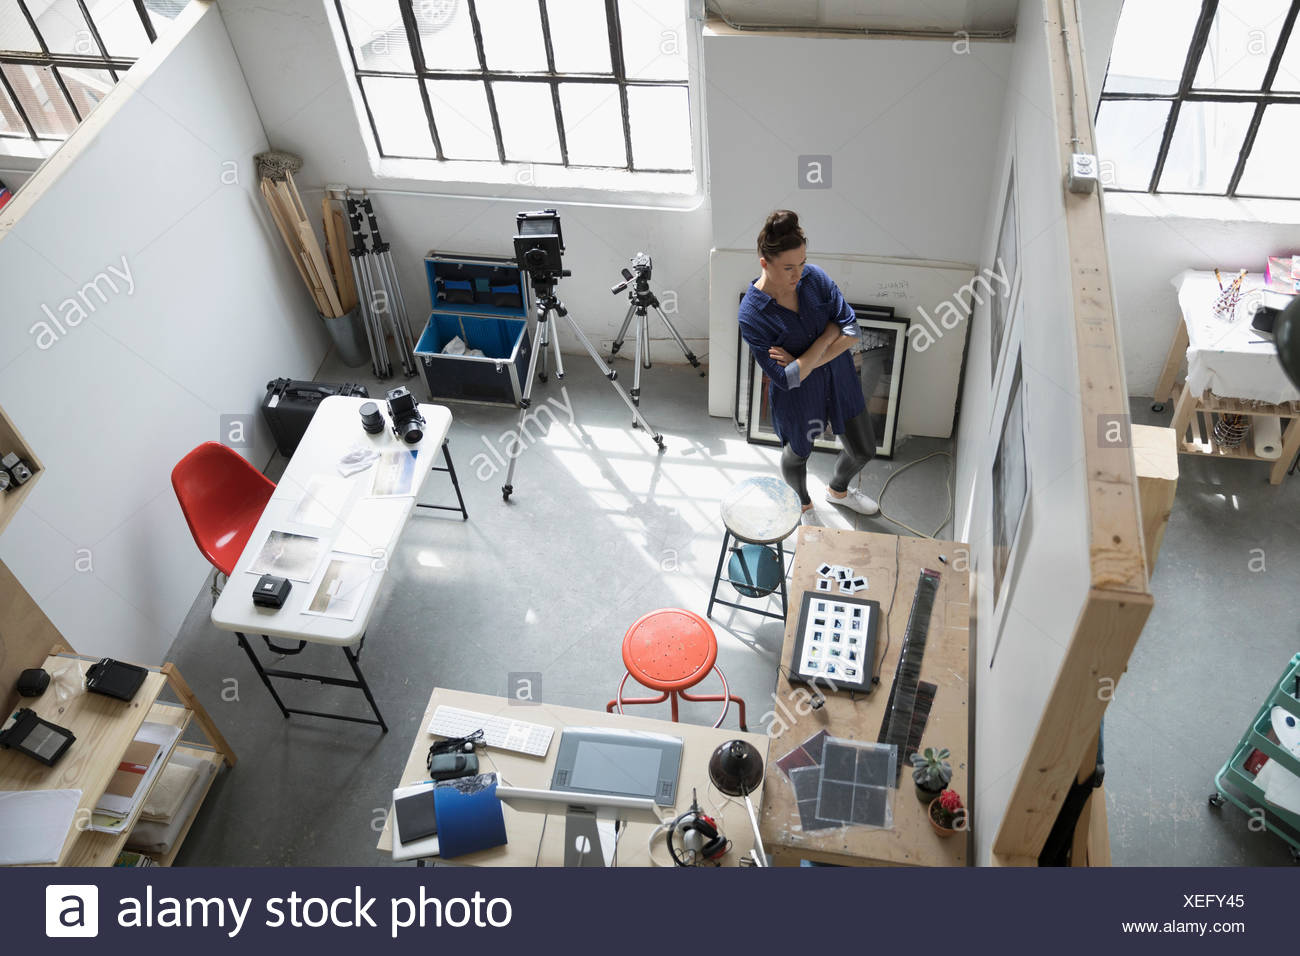 Female photographer viewing photograph prints on wall in art studio - Stock Image